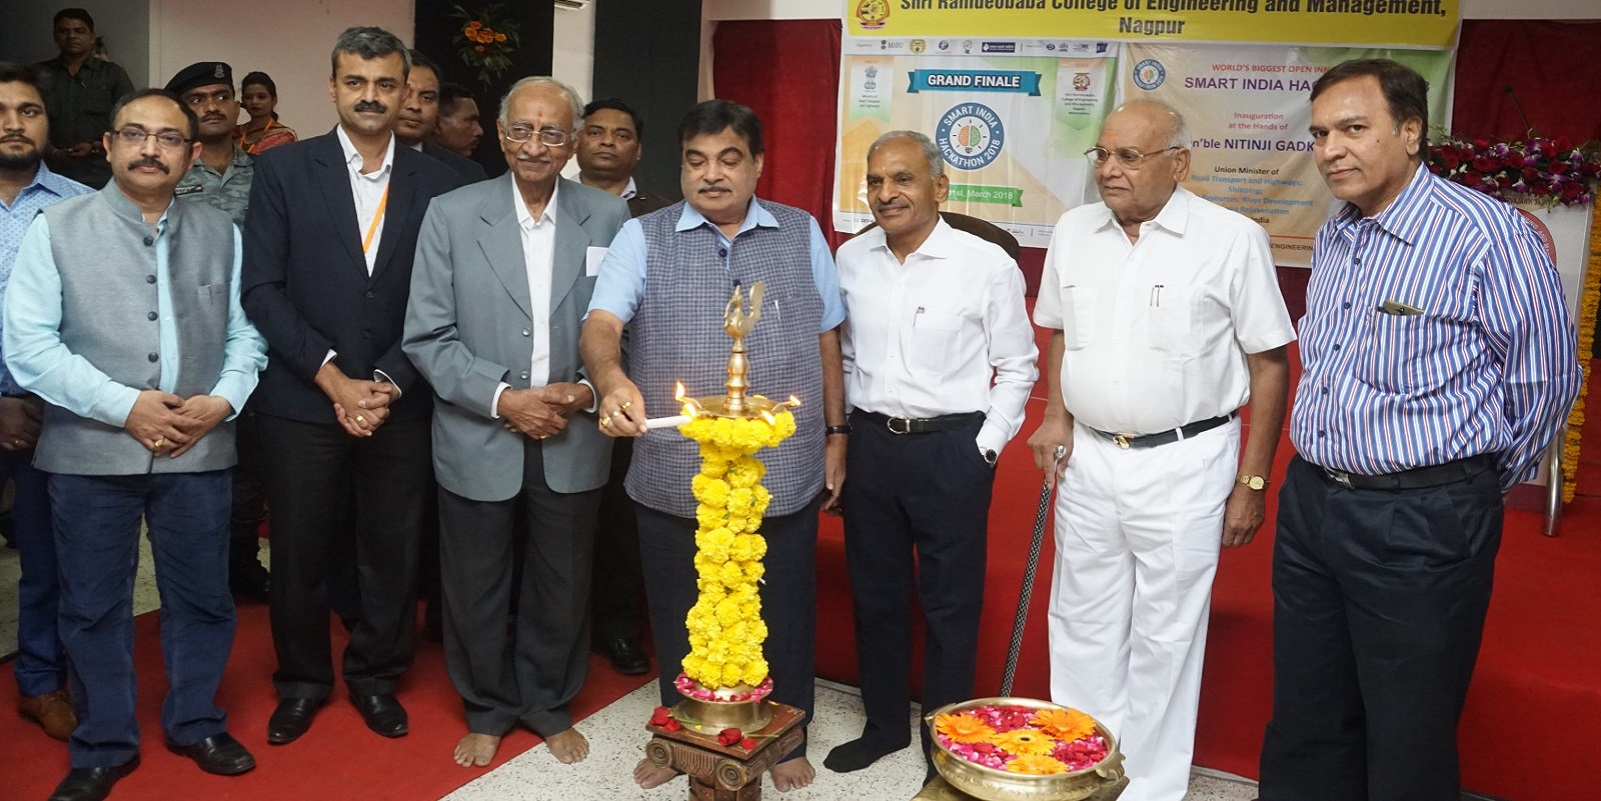 Shri Nitin Gadkari, Hon'ble Union Minister for Road Transport and Highways inaugurated the Smart India Hackathon-2018 today at Shri Ramdeobaba College of Engineering and Management (RCOEM)